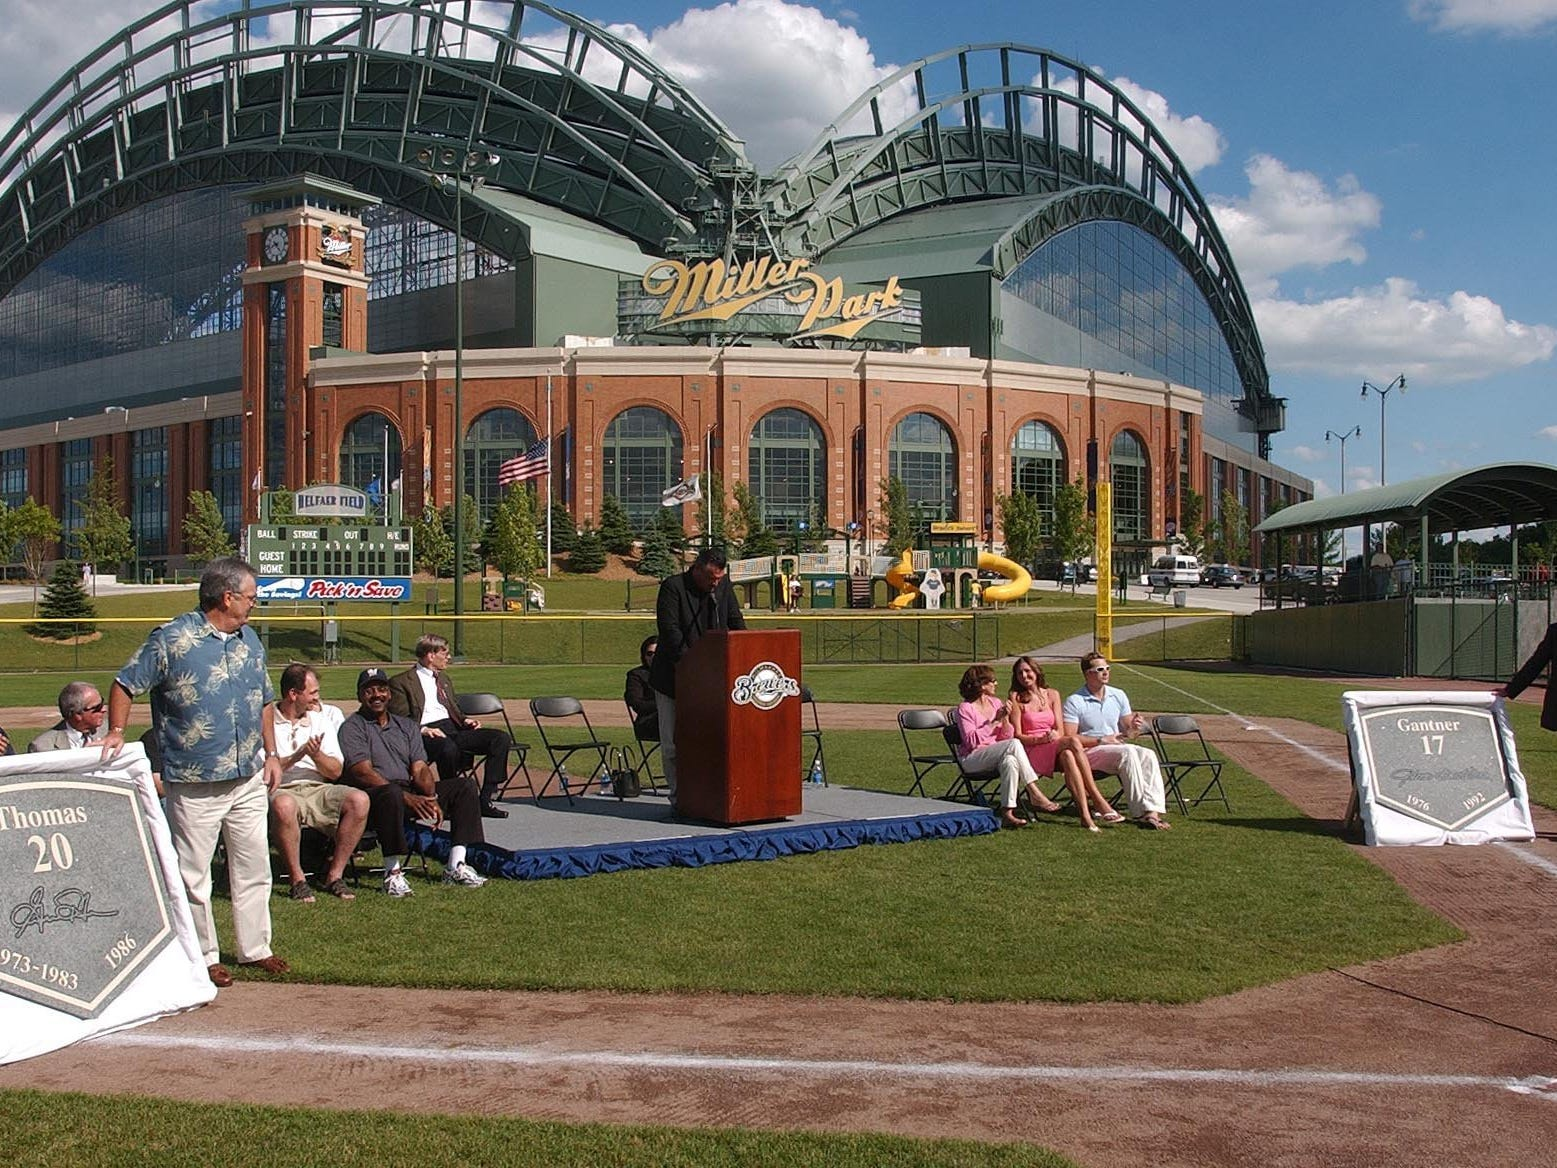 Former Milwaukee Brewers Gorman Thomas (left) and Jim Gantner uncovered their stone that will be placed in the Brewers Walk of Fame during their induction ceremony at Miller Park's Helfaer Field in Milwaukee June 22, 2004.